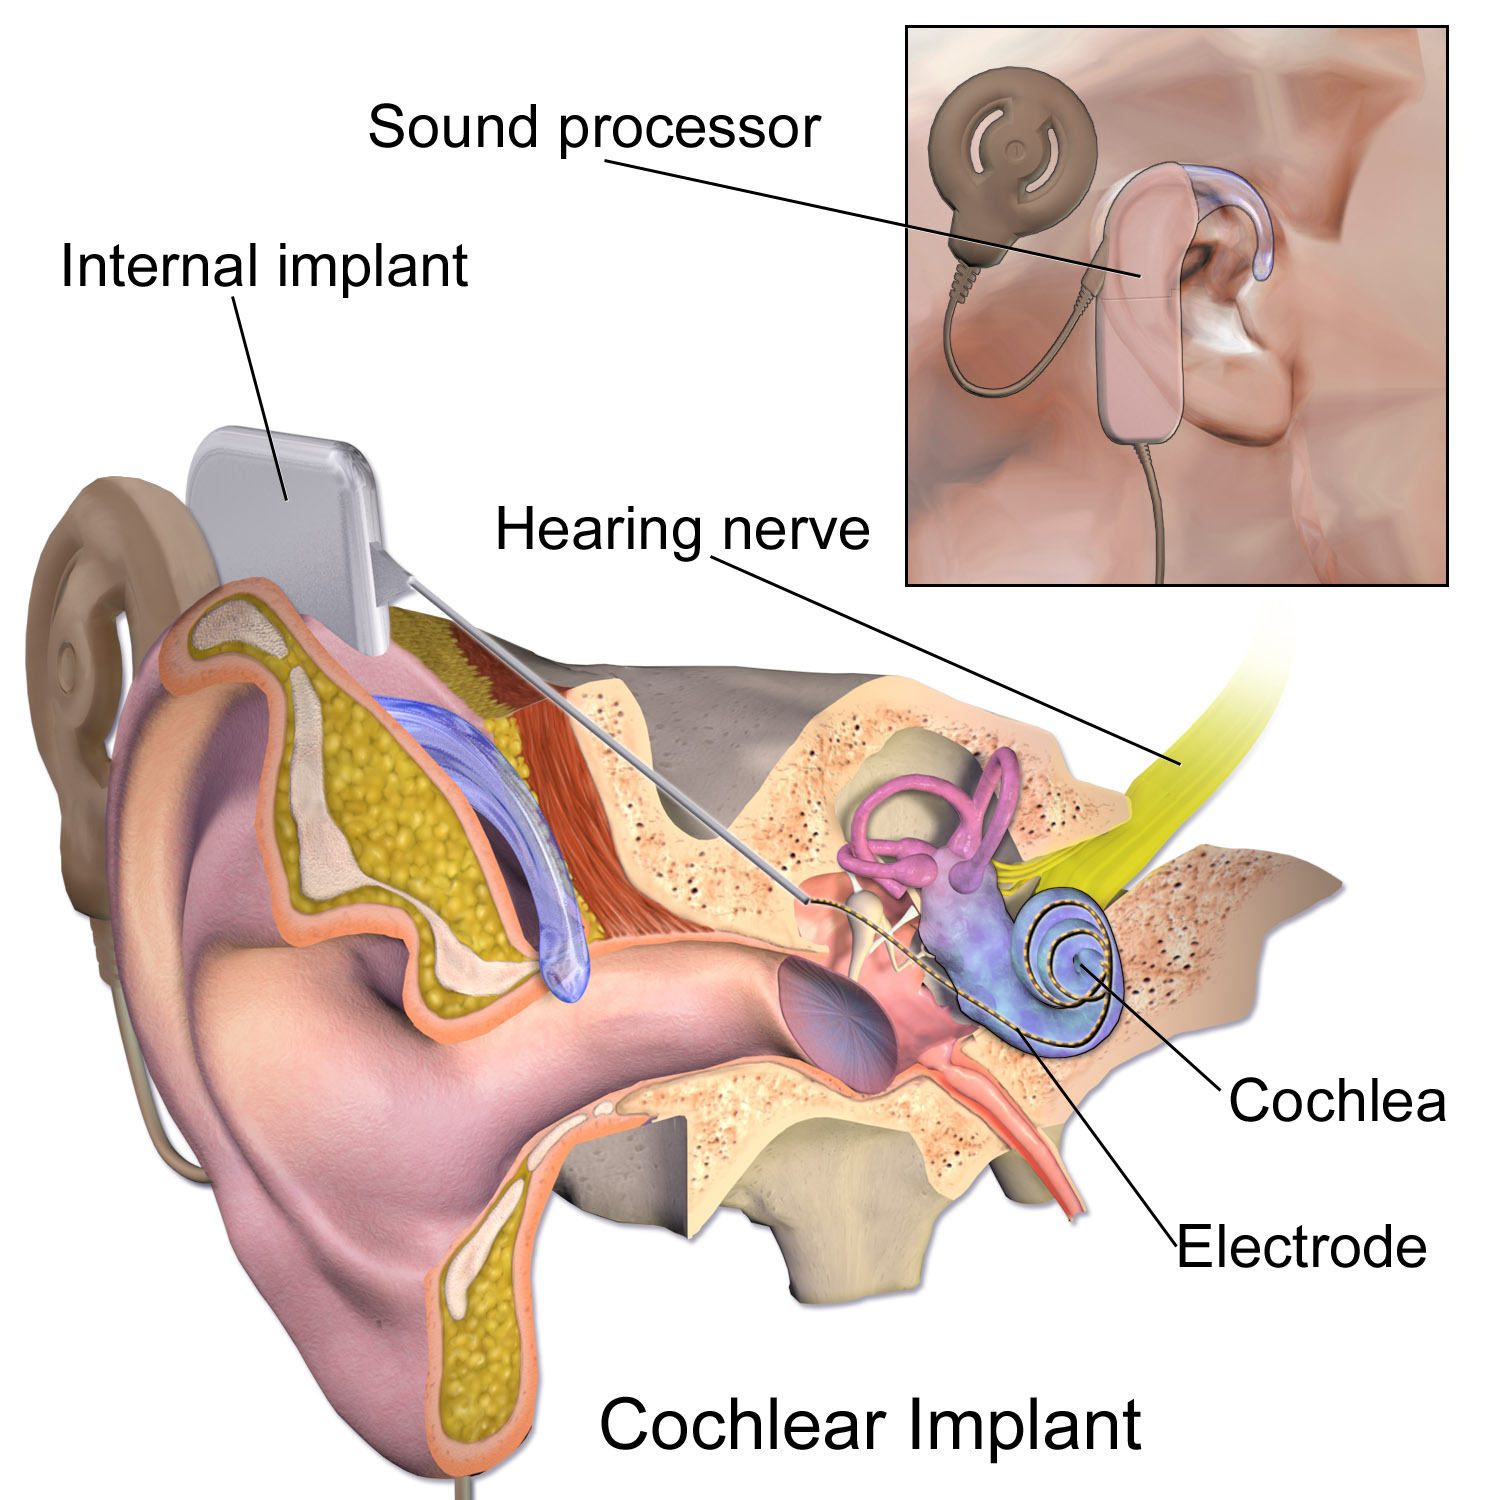 Cochlearimplantg